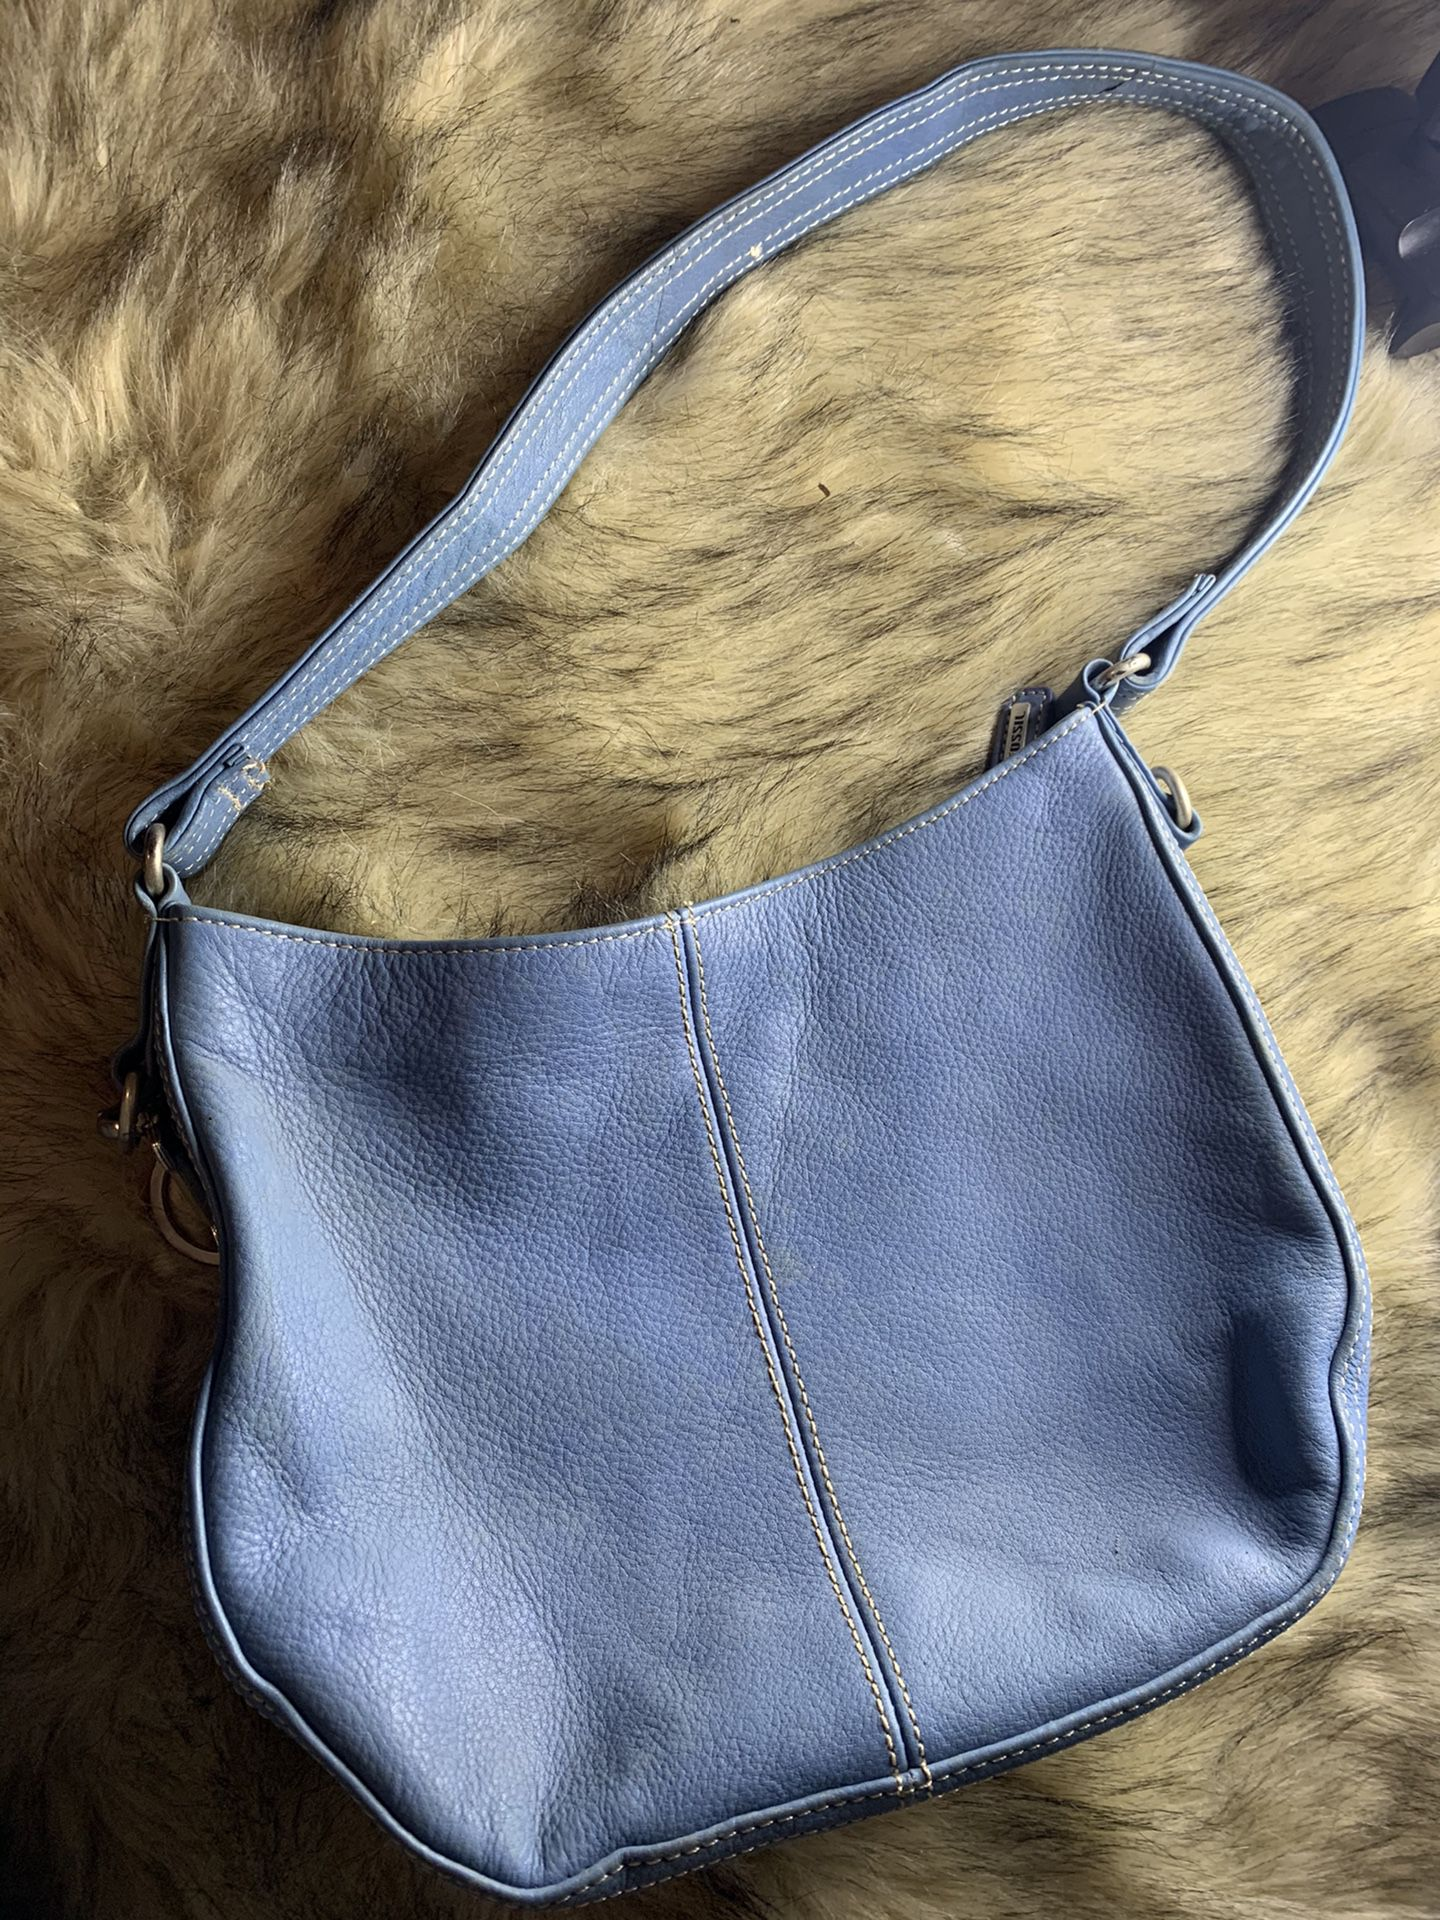 practical and comfortable fossil lady bag ideal for a quick walk in good conditions